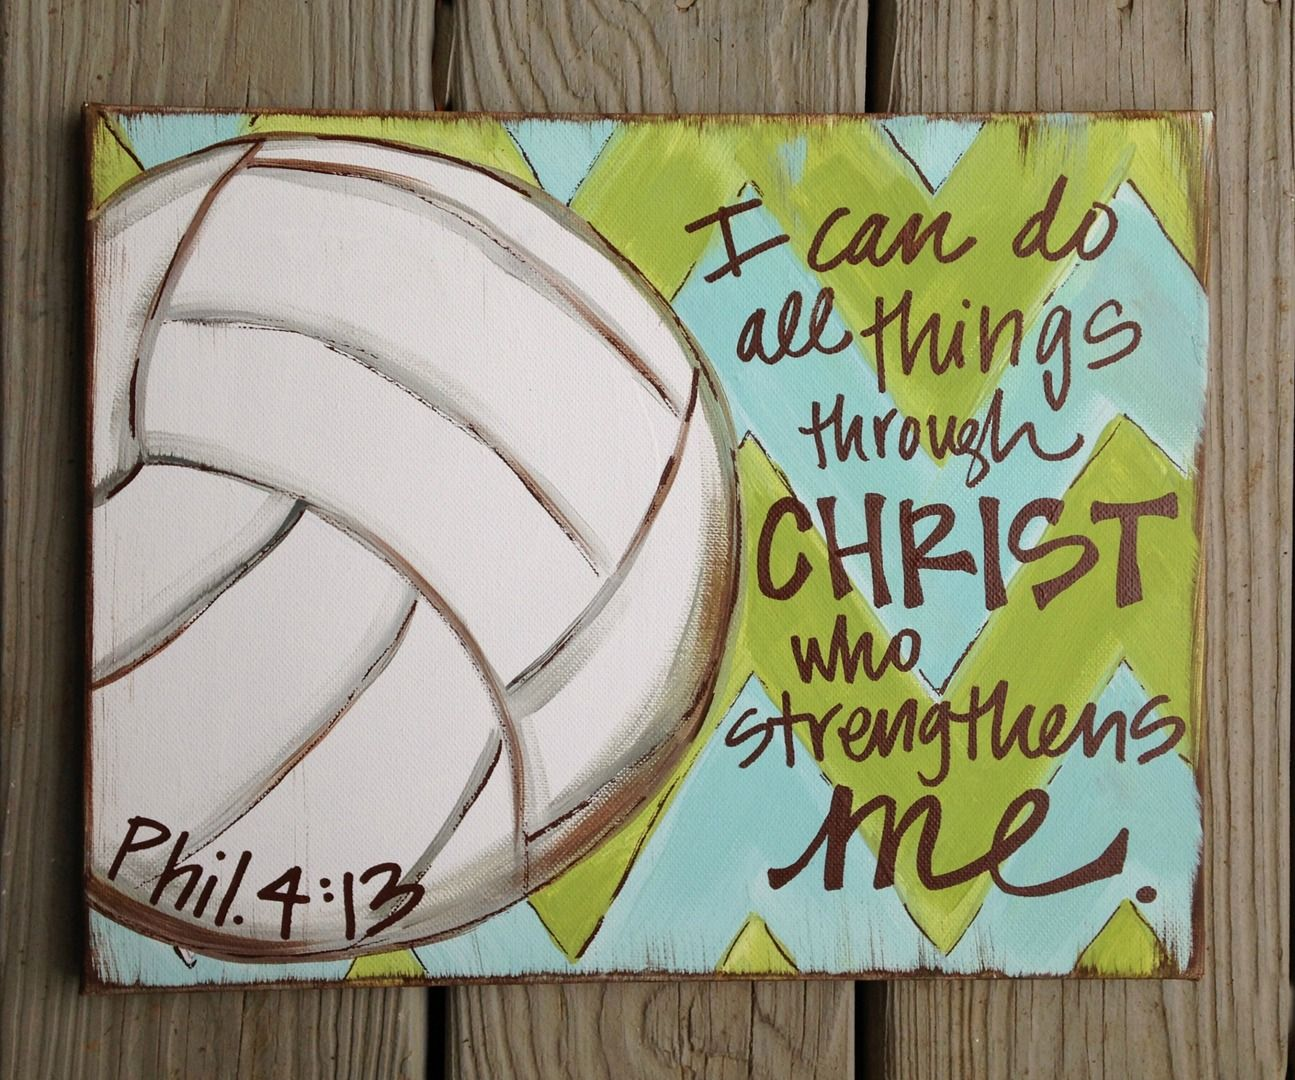 volleyball craft ideas 9126f7a48da0811c03354a4ff9eee5af 1 295 215 1 080 pixels 3195